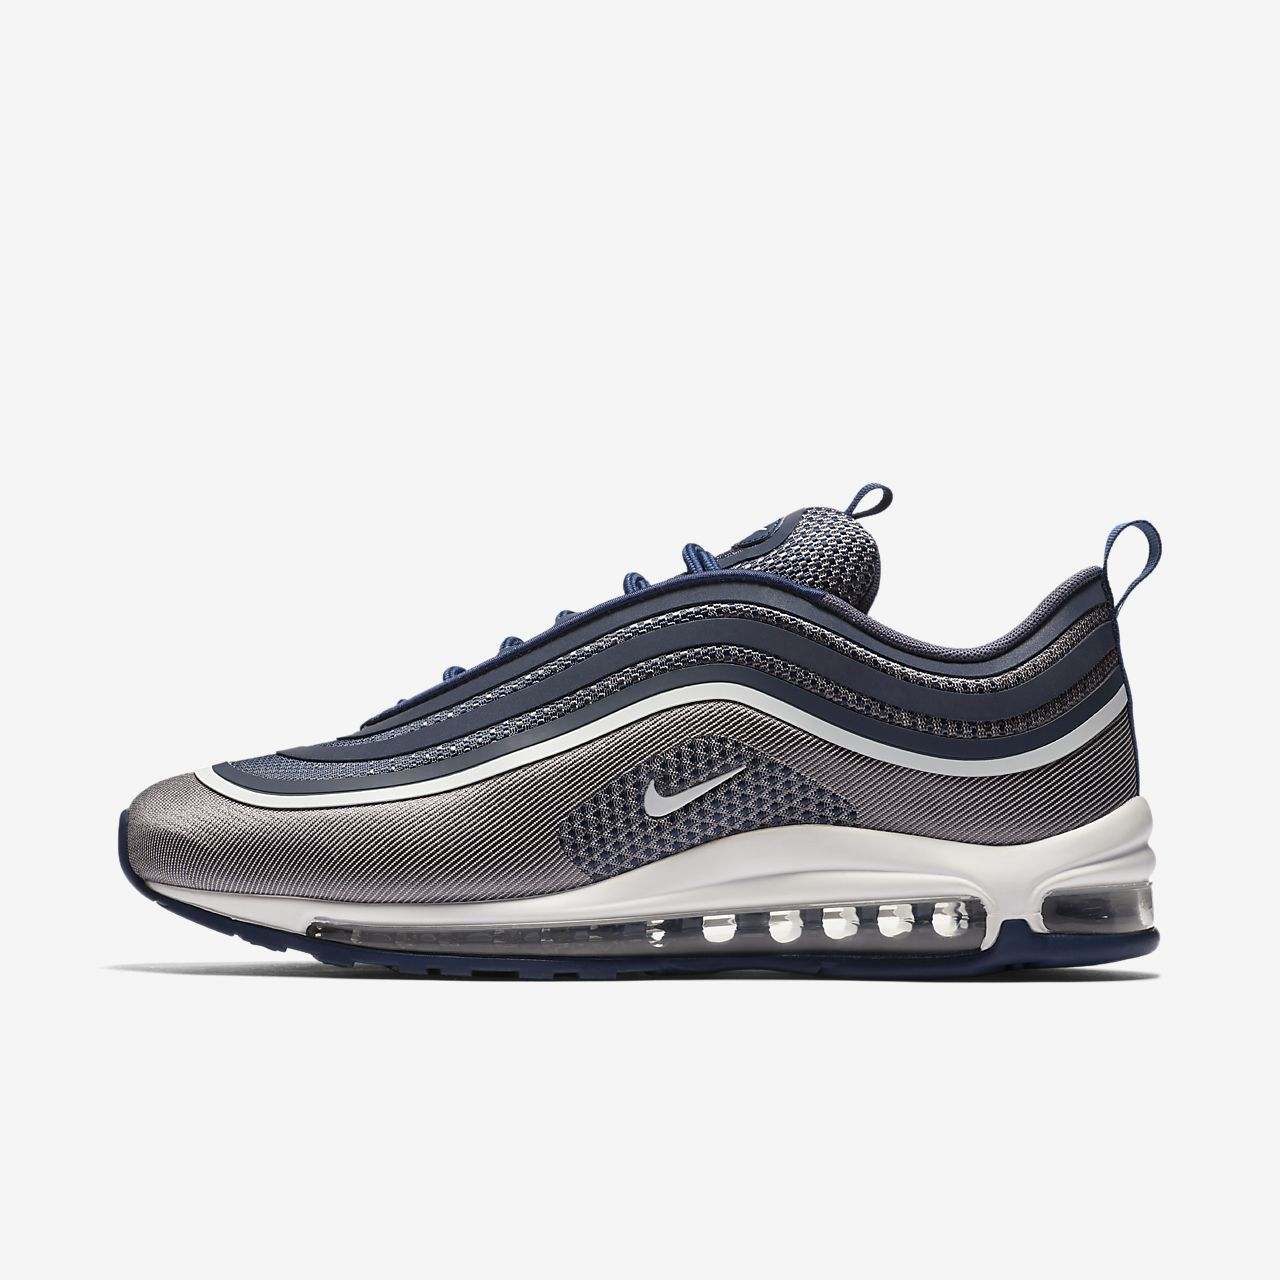 Nike Air Max 97 OG 'Silver Bullet' Still Available News